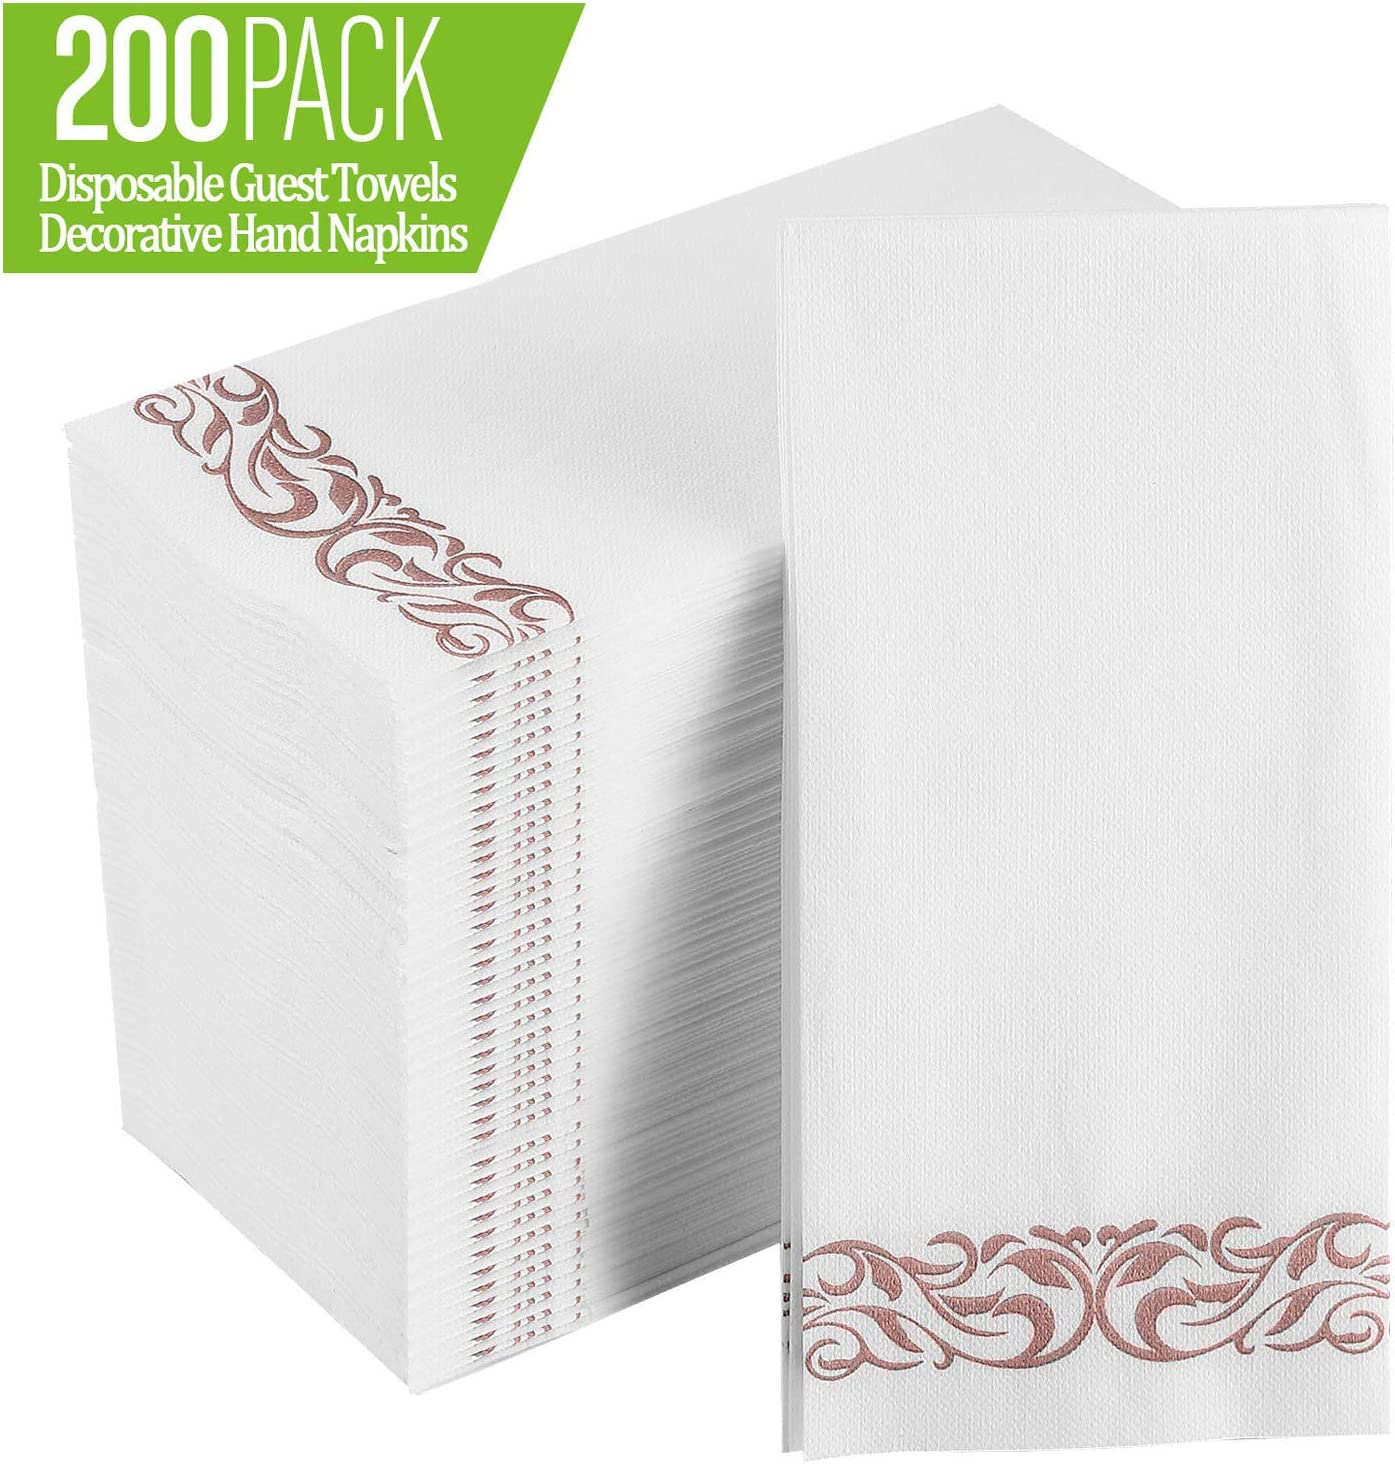 [200 Pack] Disposable Guest Towels Soft and Absorbent Linen-Feel Paper Hand Towels Durable Decorative Bathroom Hand Napkins for Kitchen,Parties,Weddings,Dinners or Events,White and Rose Gold